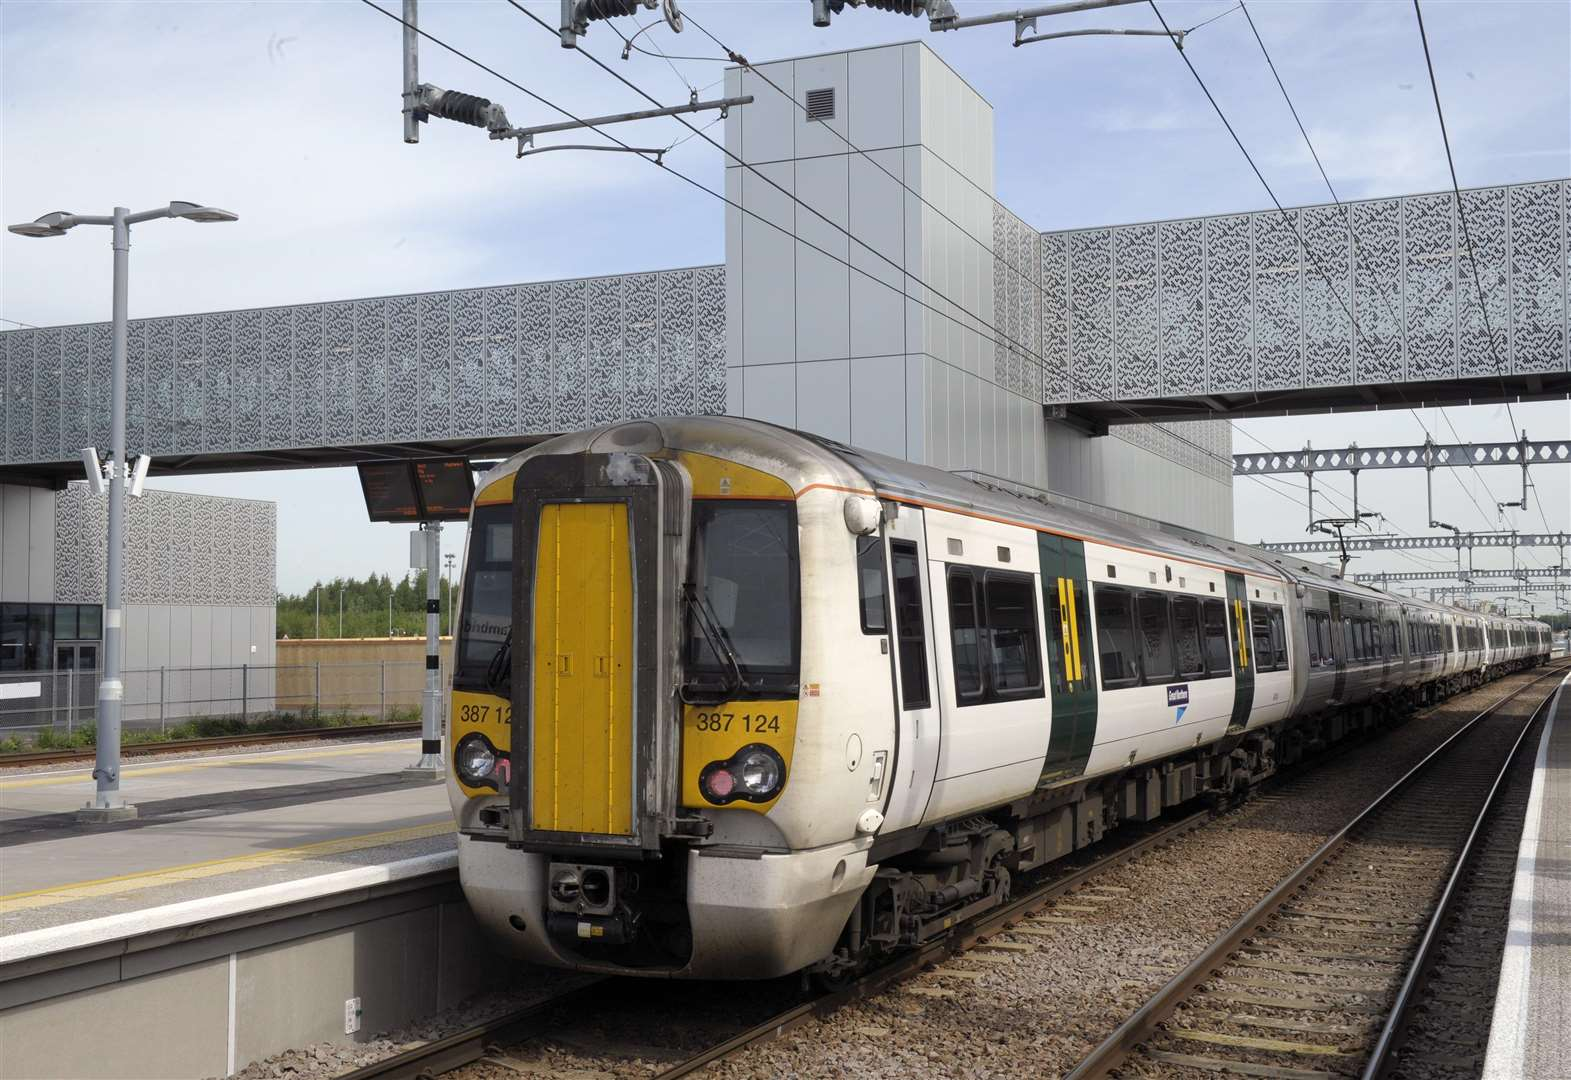 BREAKING NEWS: Pedestrian dies following collision with train on West Norfolk line